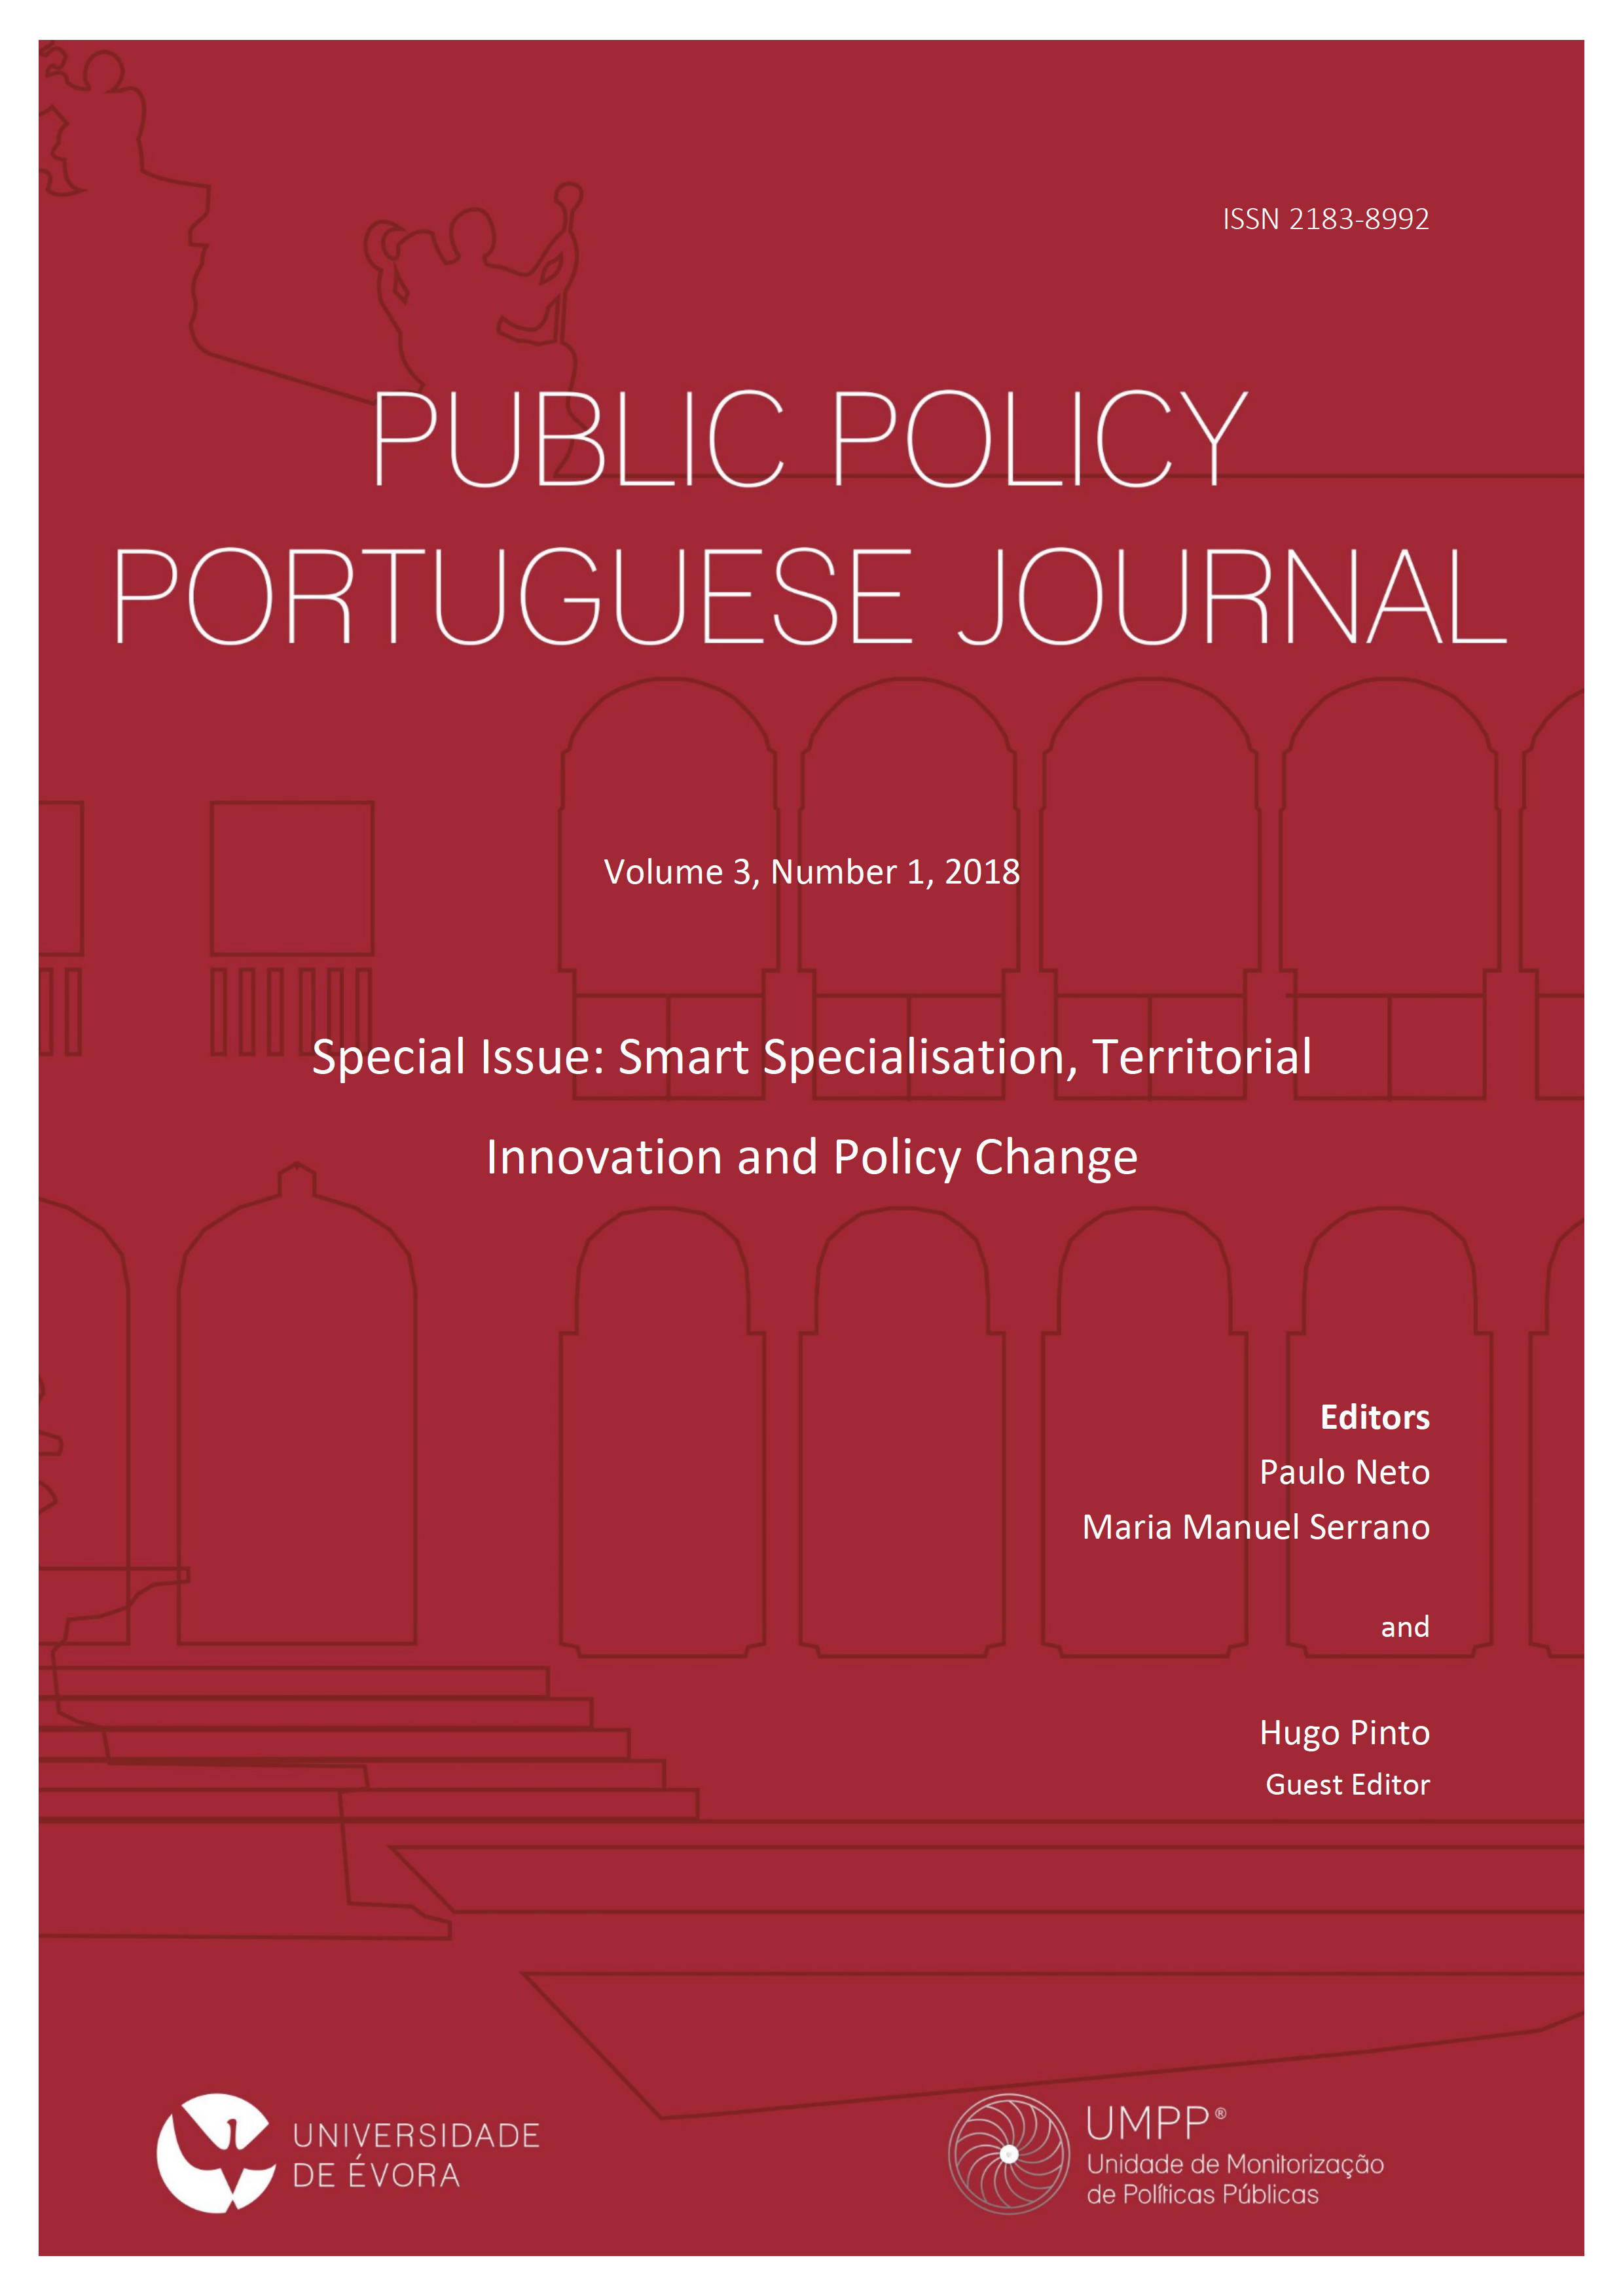 Special Issue: Smart Specialisation, Territorial Innovation and Policy Change